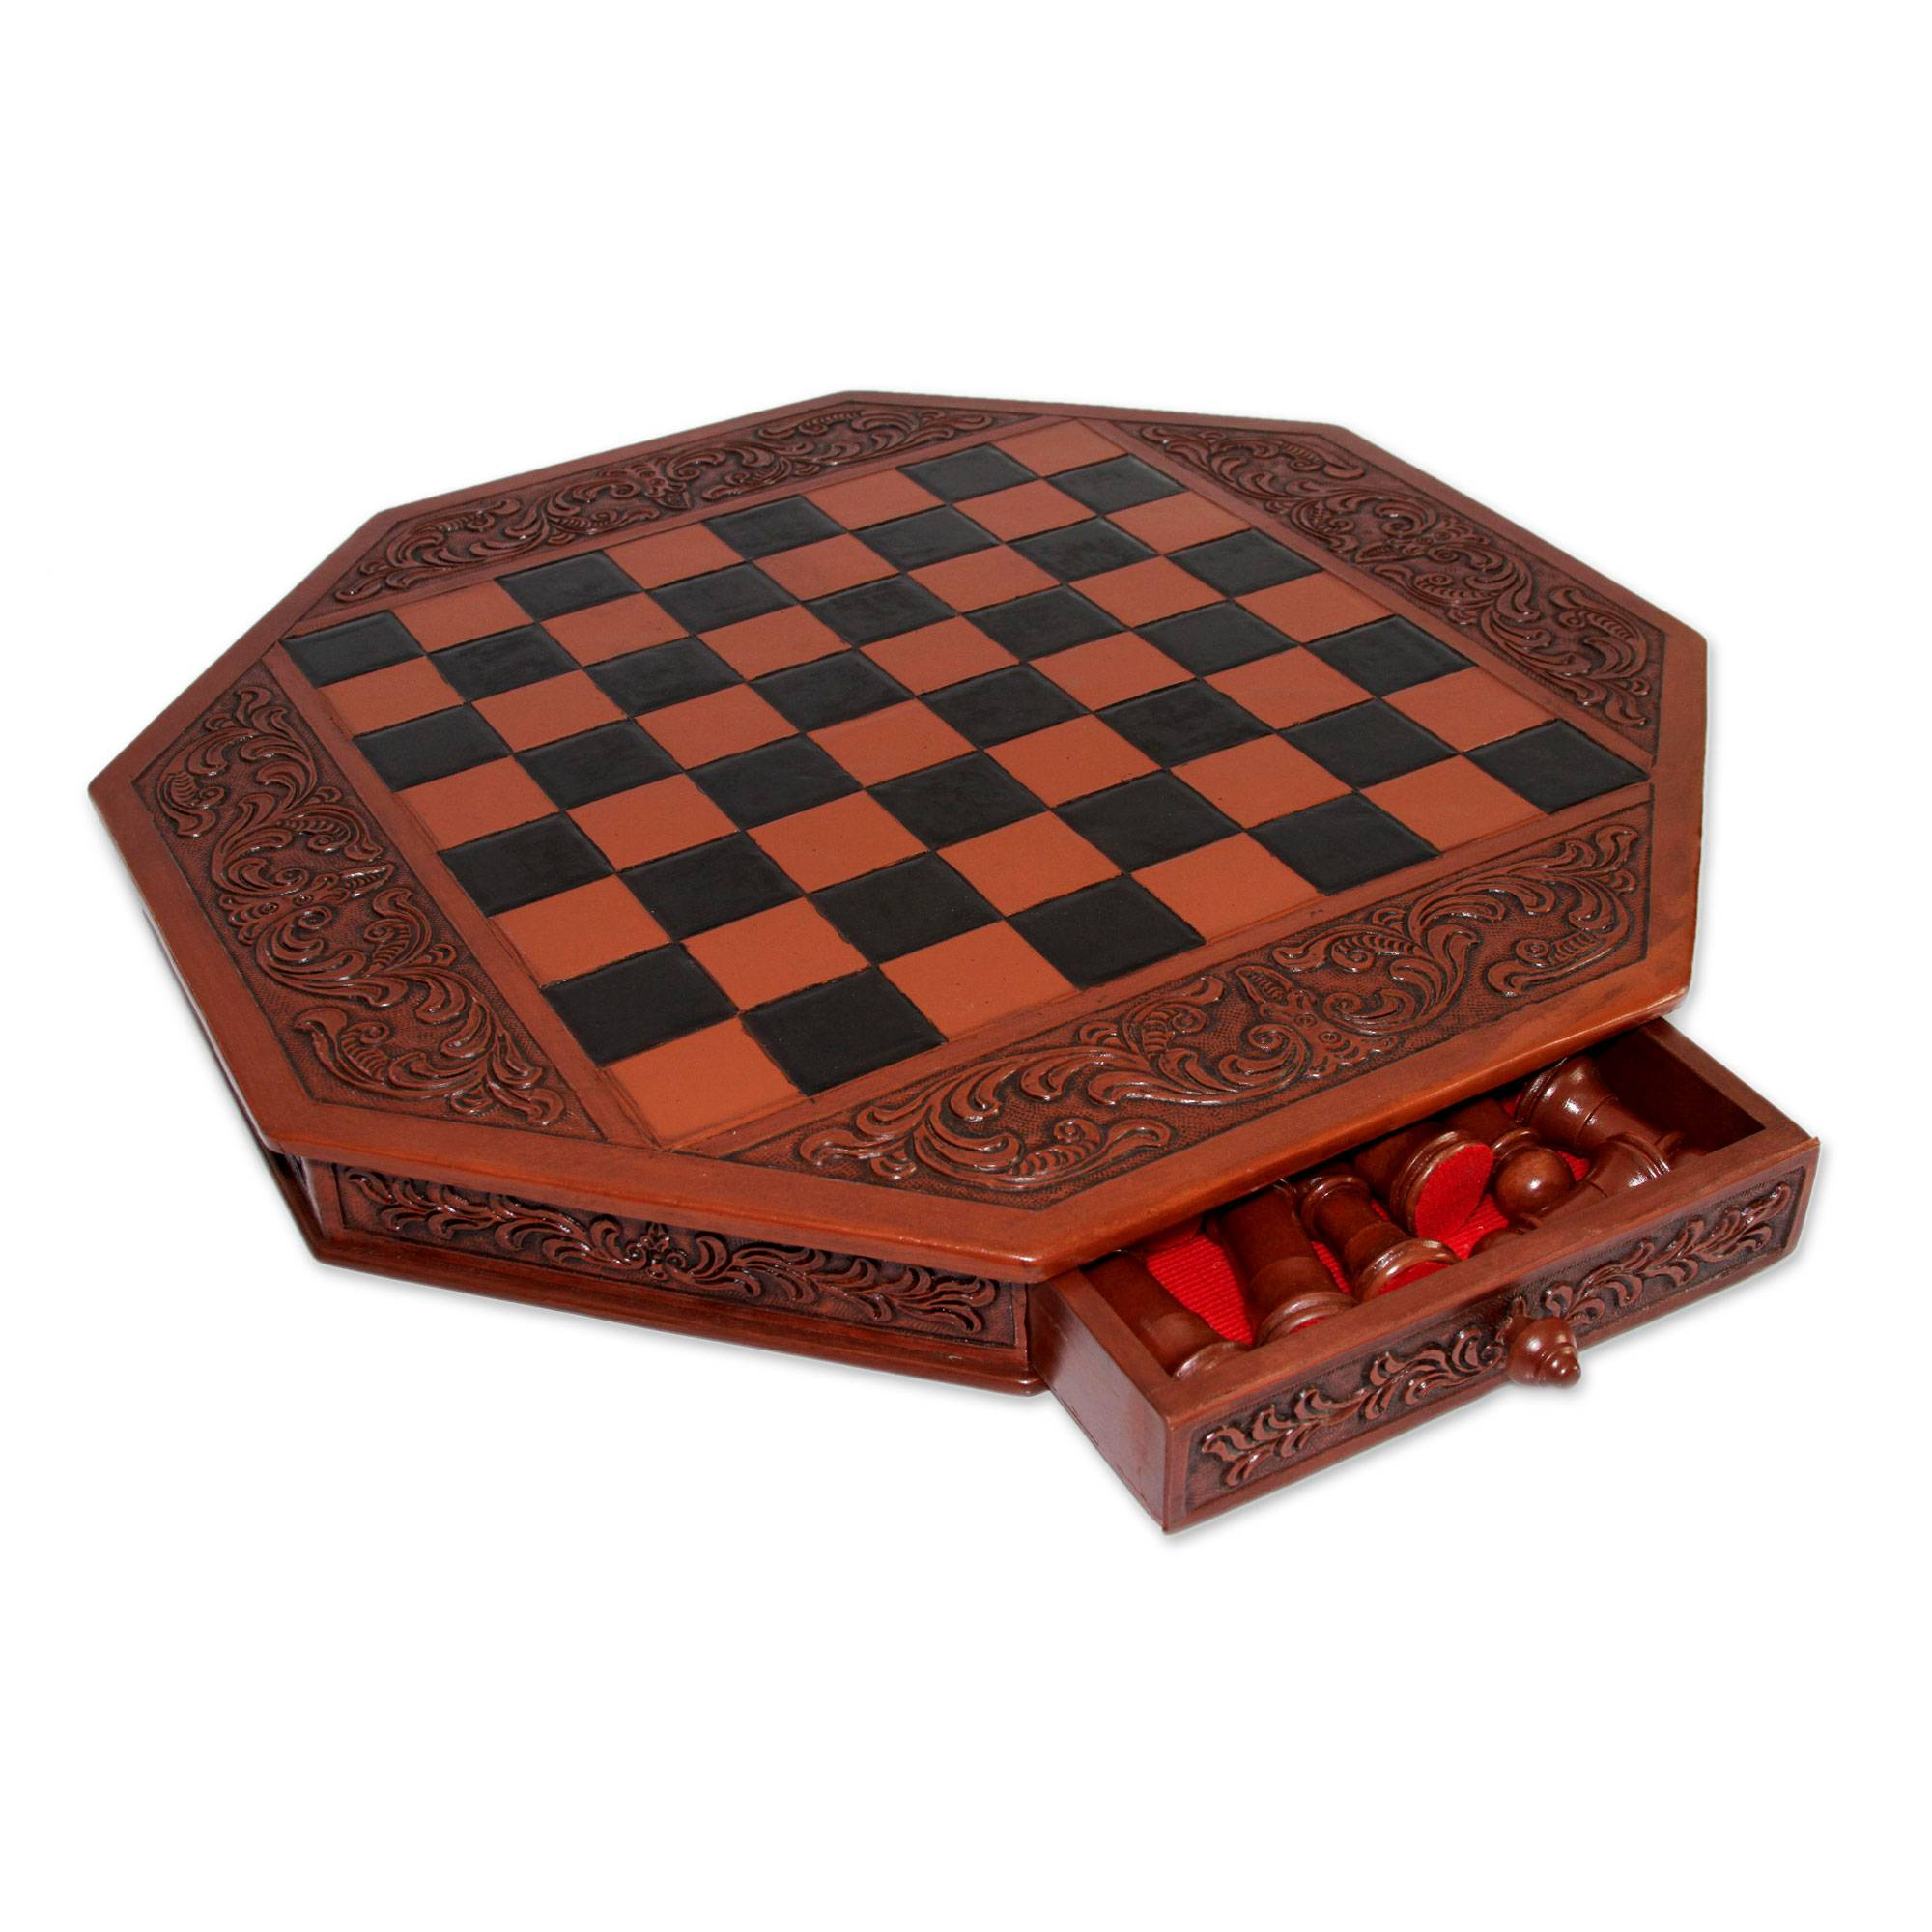 artisan crafted peruvian wood leather chess set colonial octagon